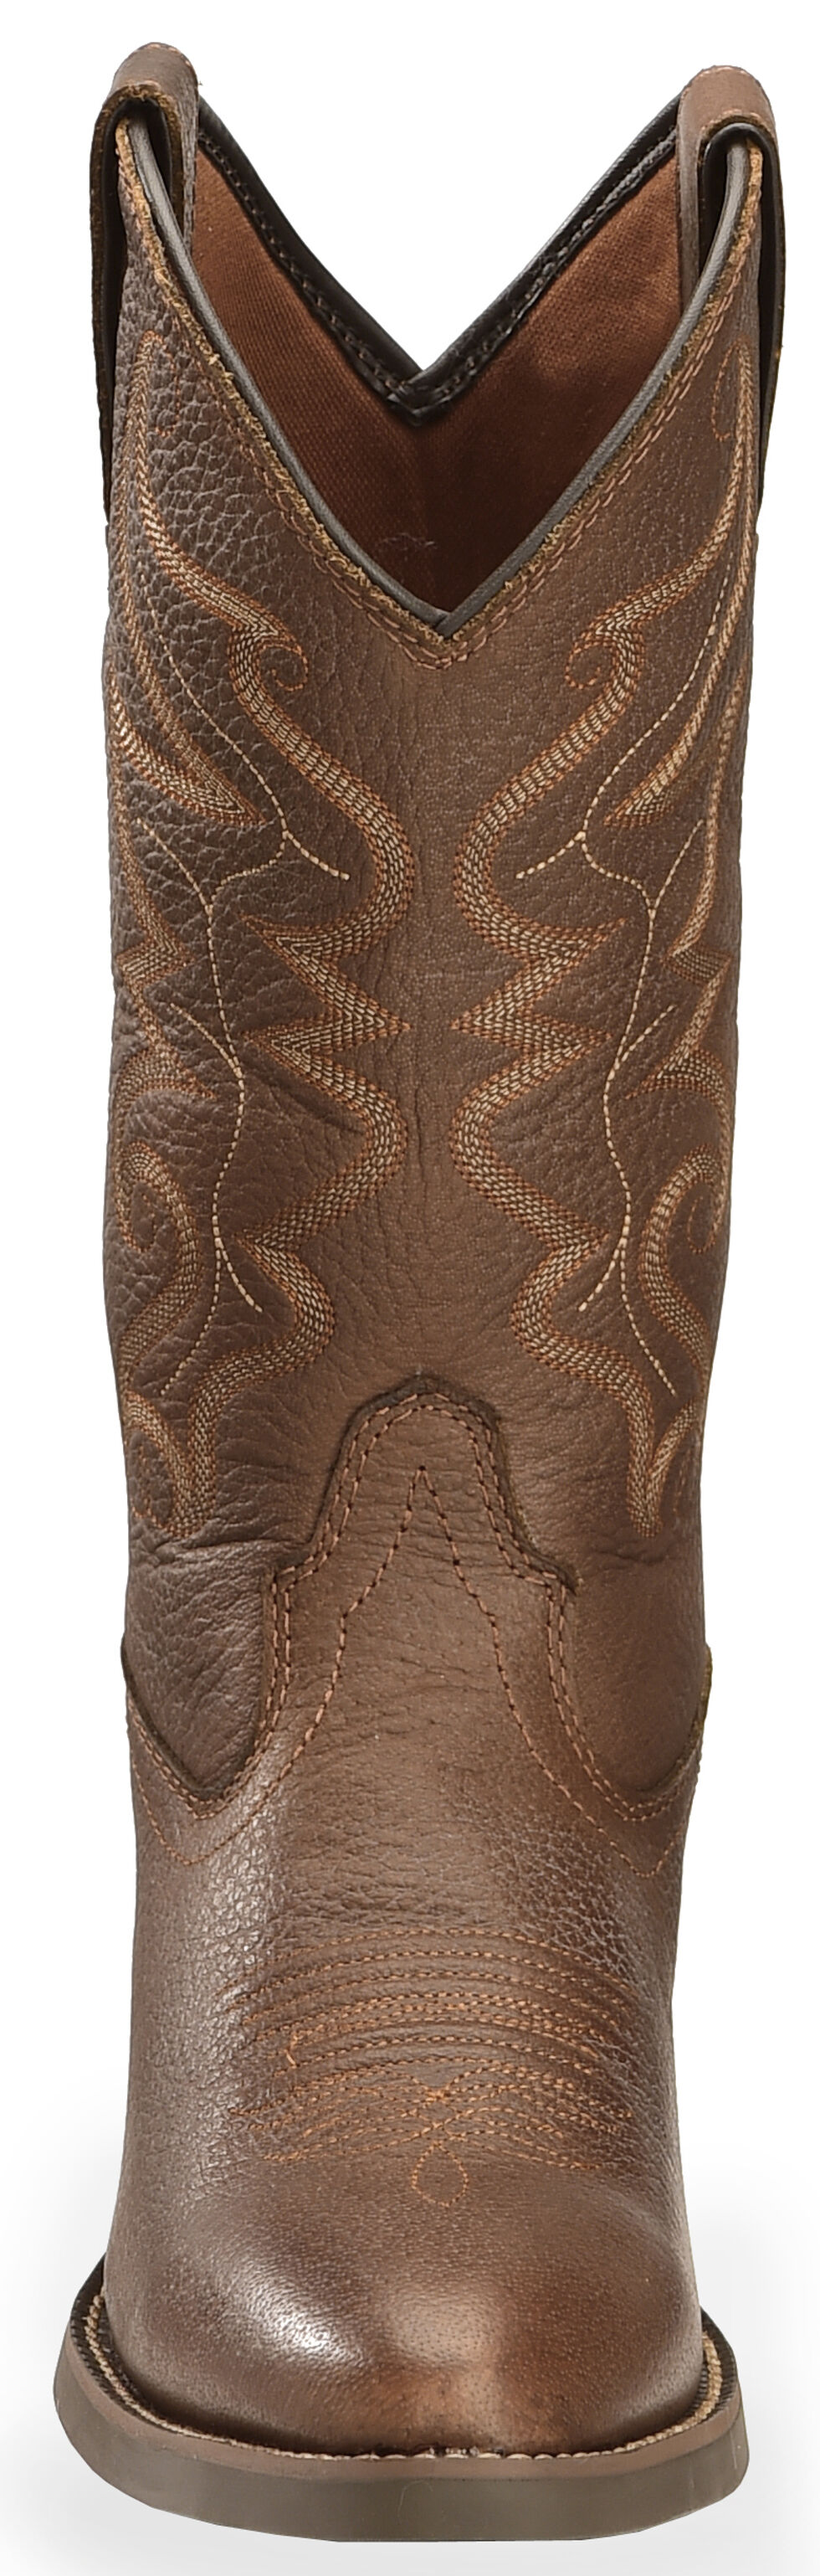 Justin Men's All Star Chocolate Western Boots - Round Toe , Chocolate, hi-res